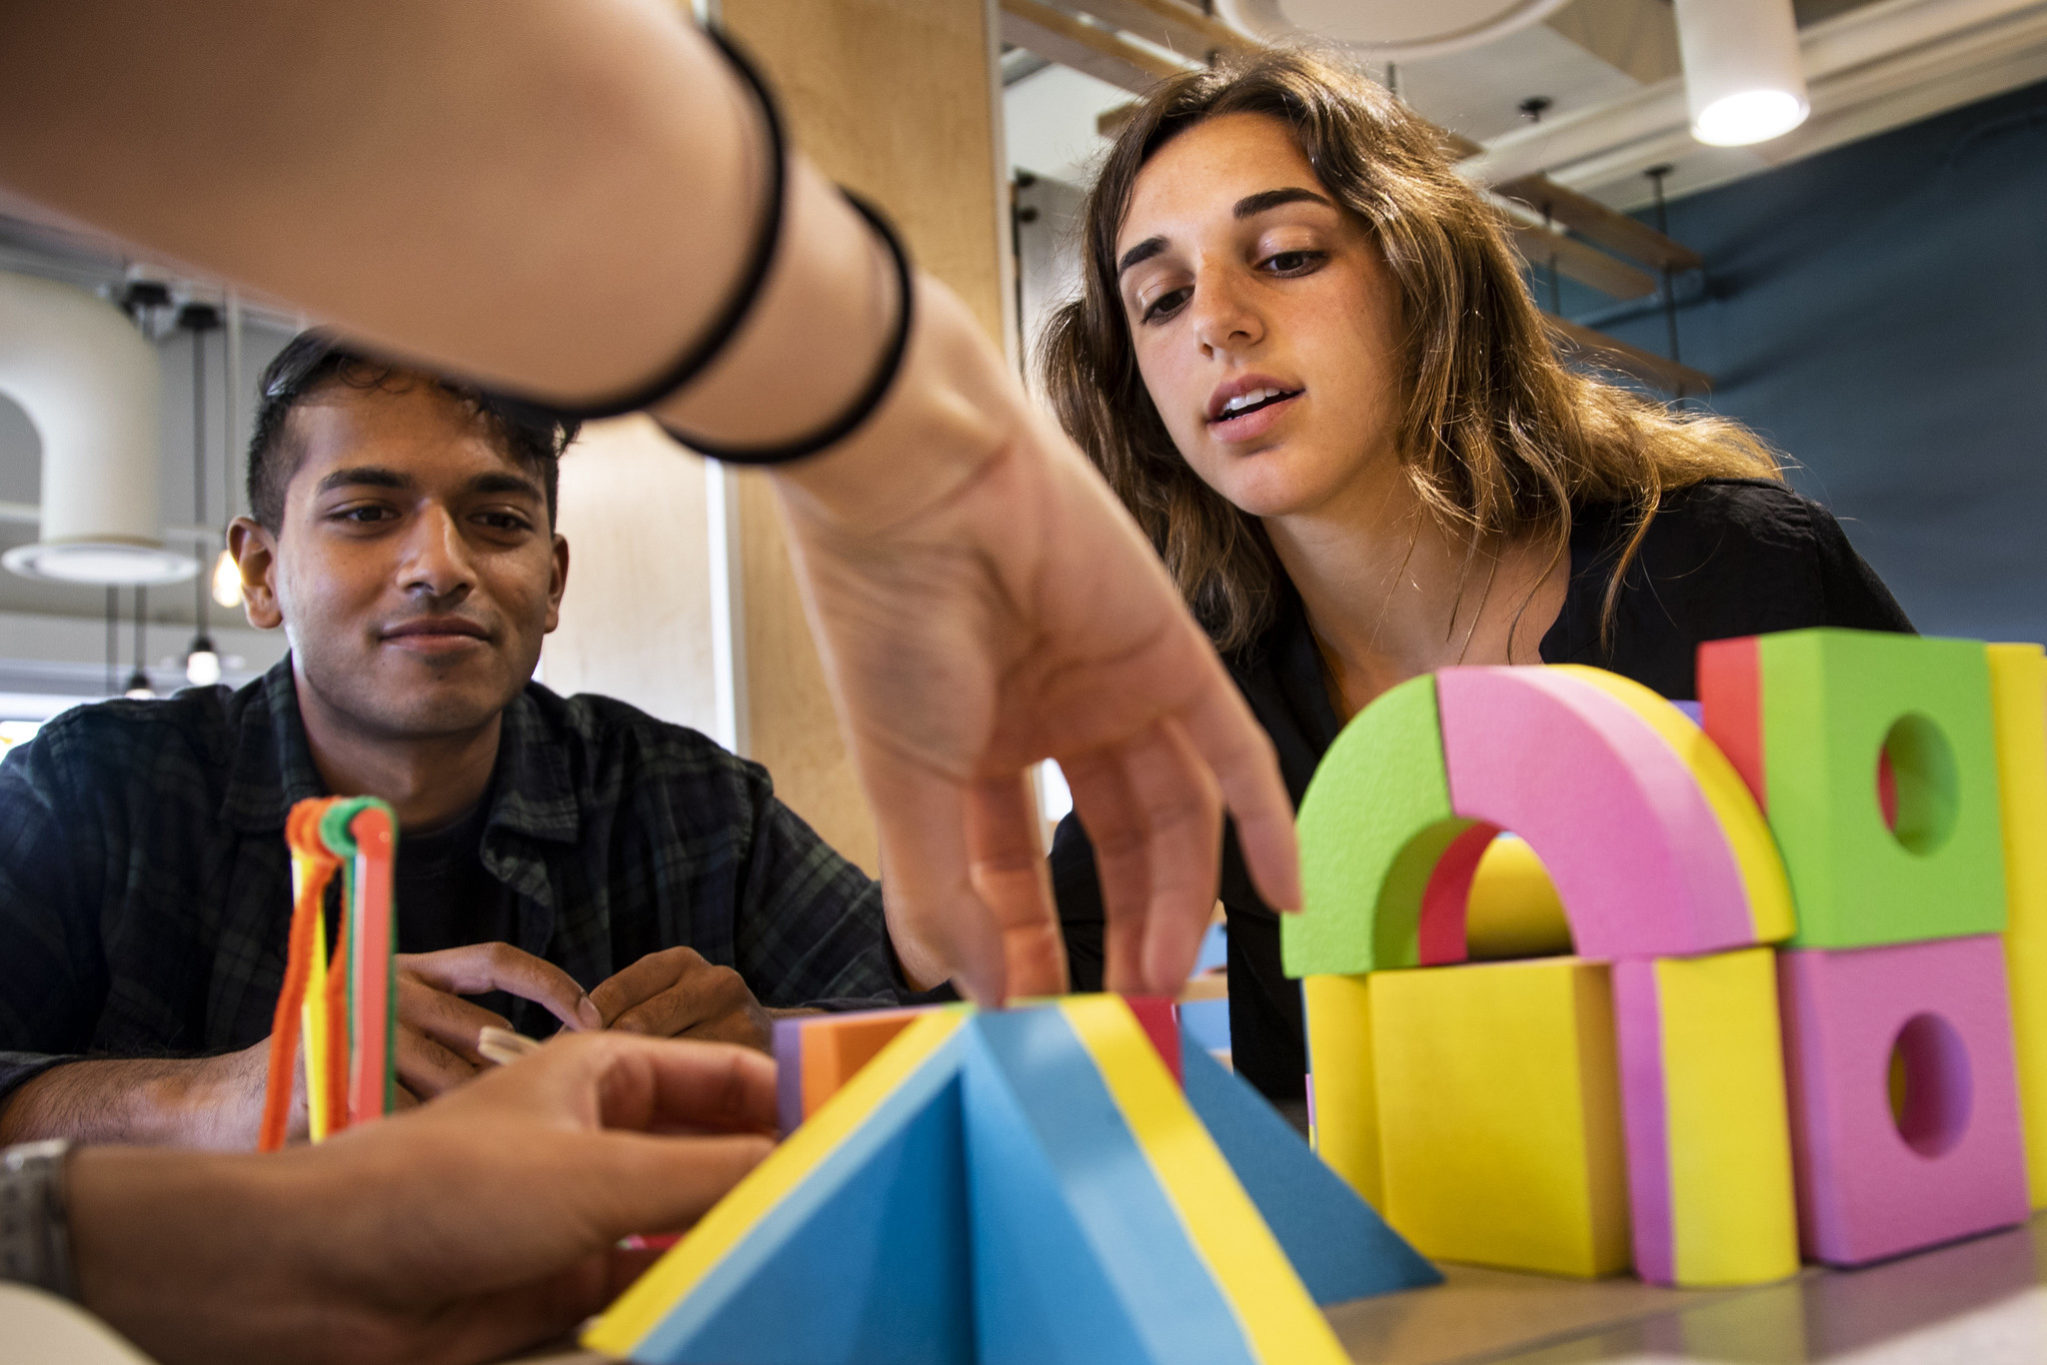 Members of the the Center for Socially Engaged Design (C-SED) work with building blocks